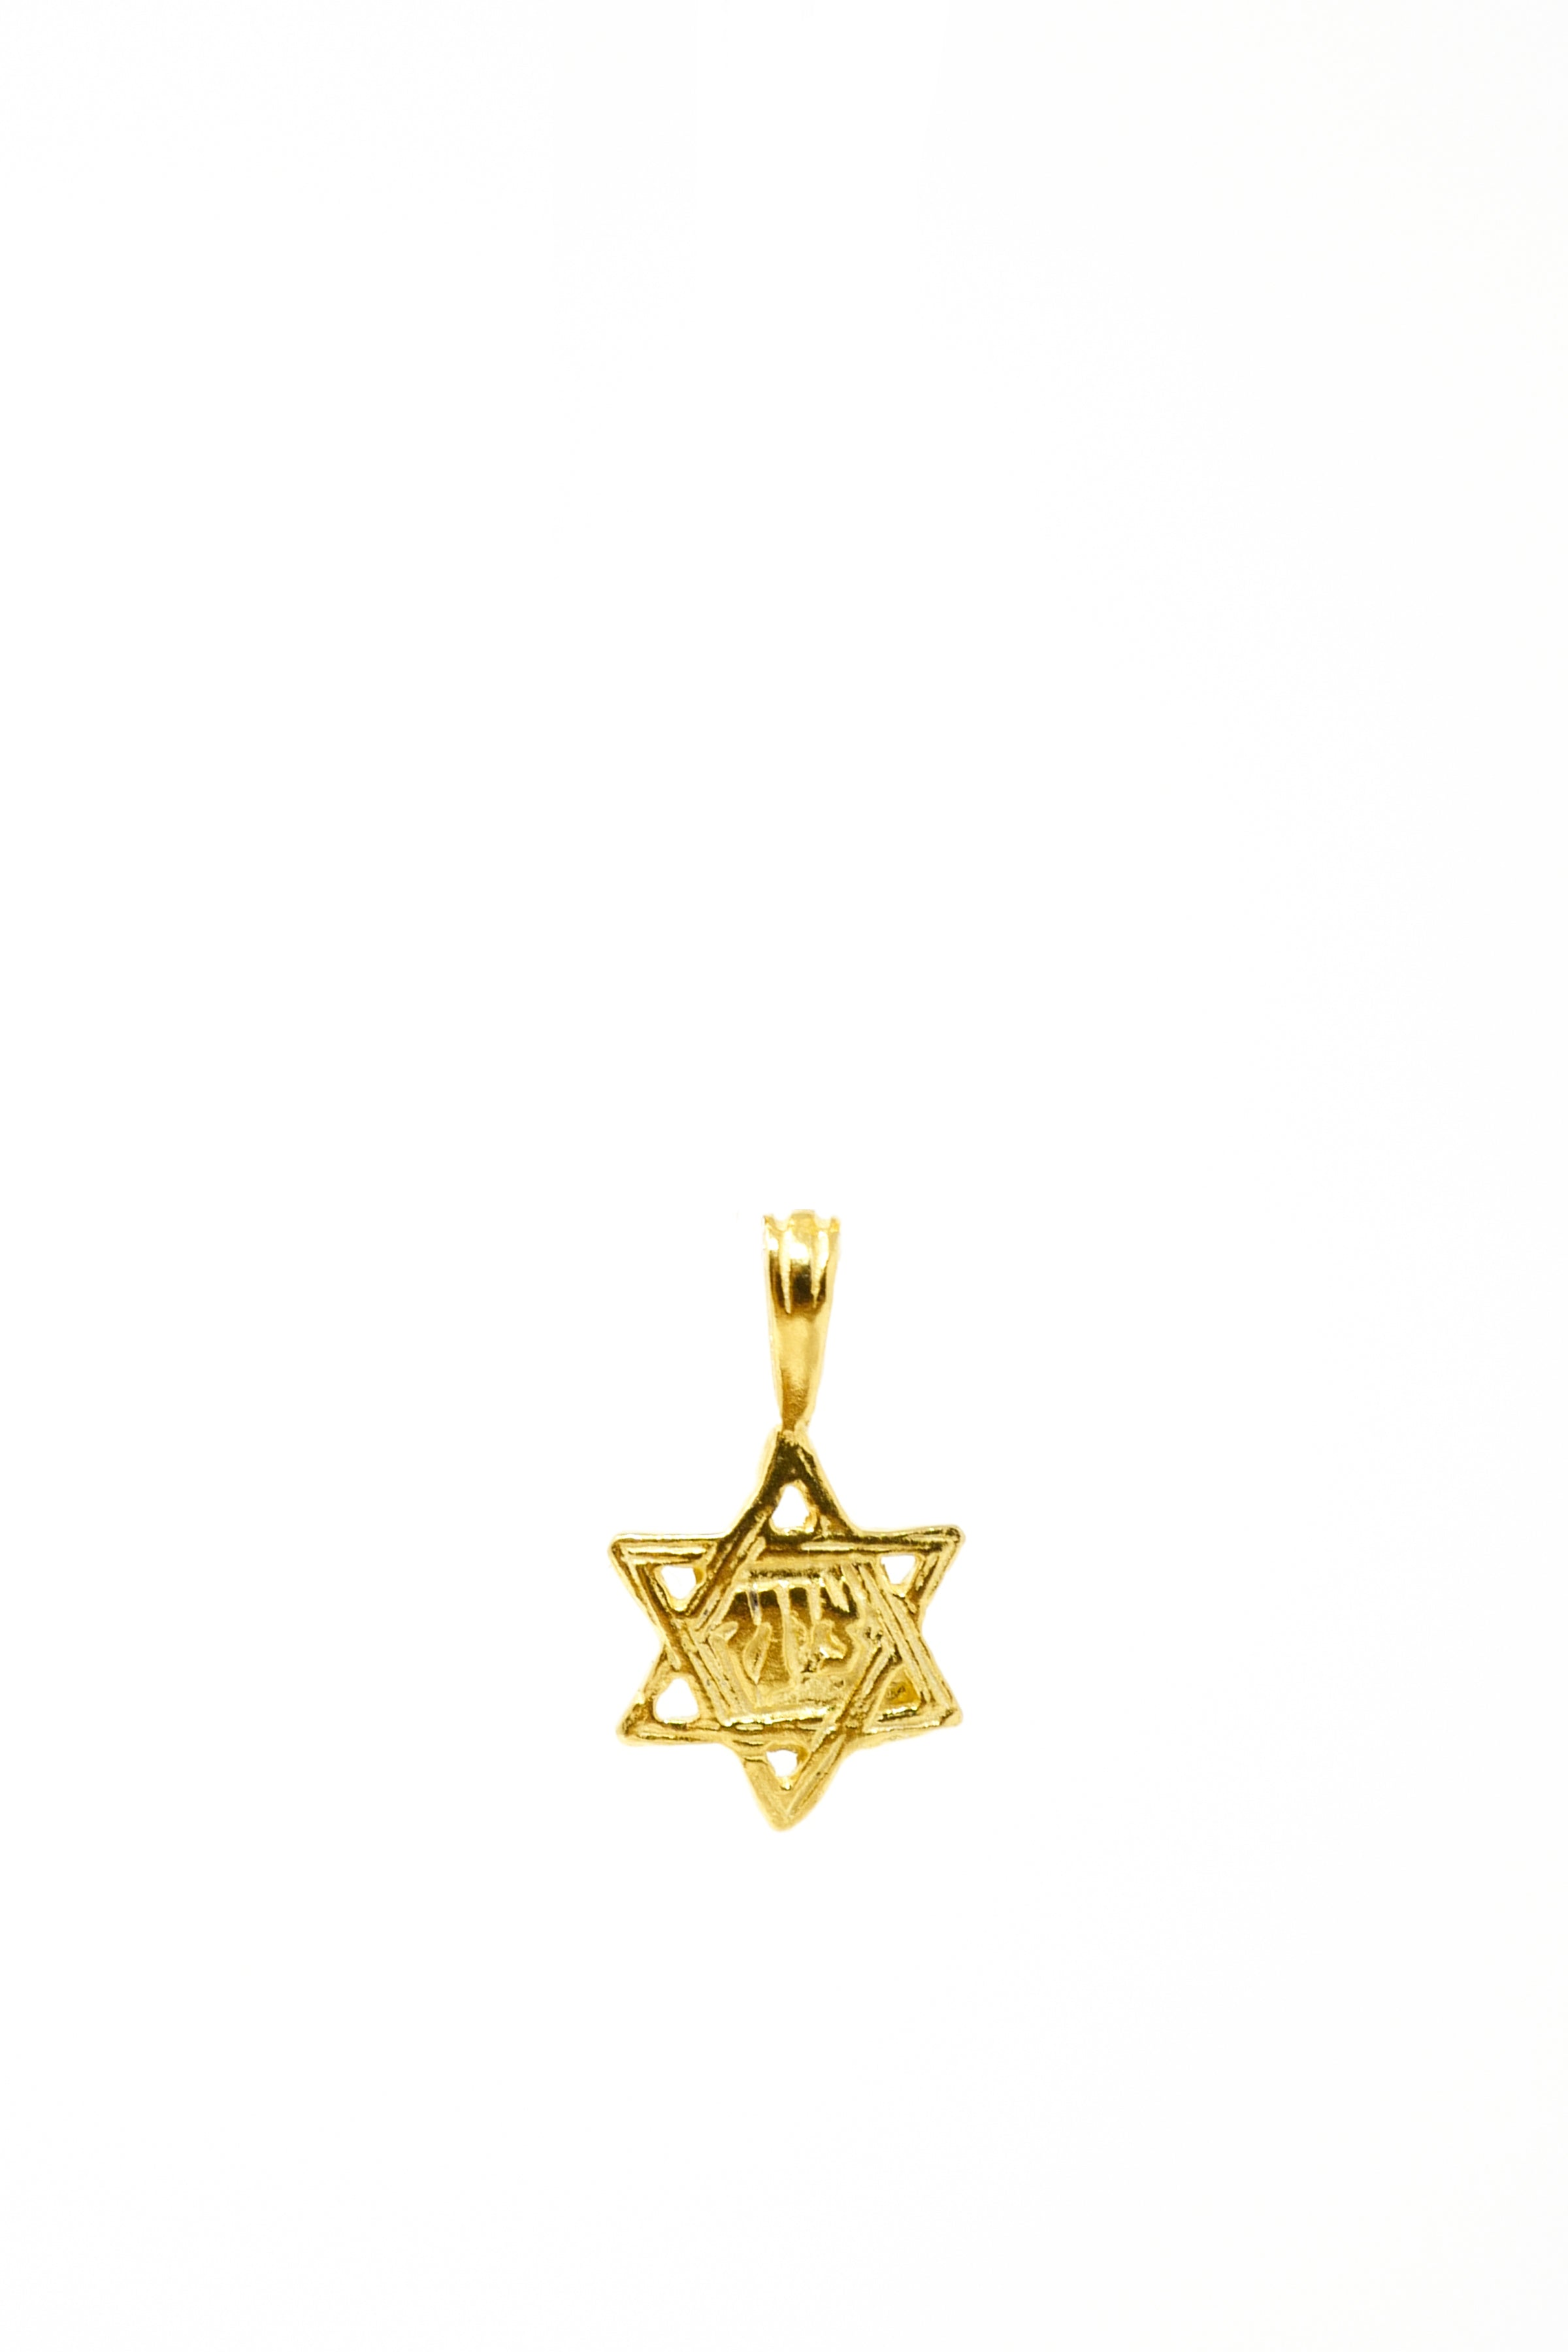 THE STAR of David Pendant I